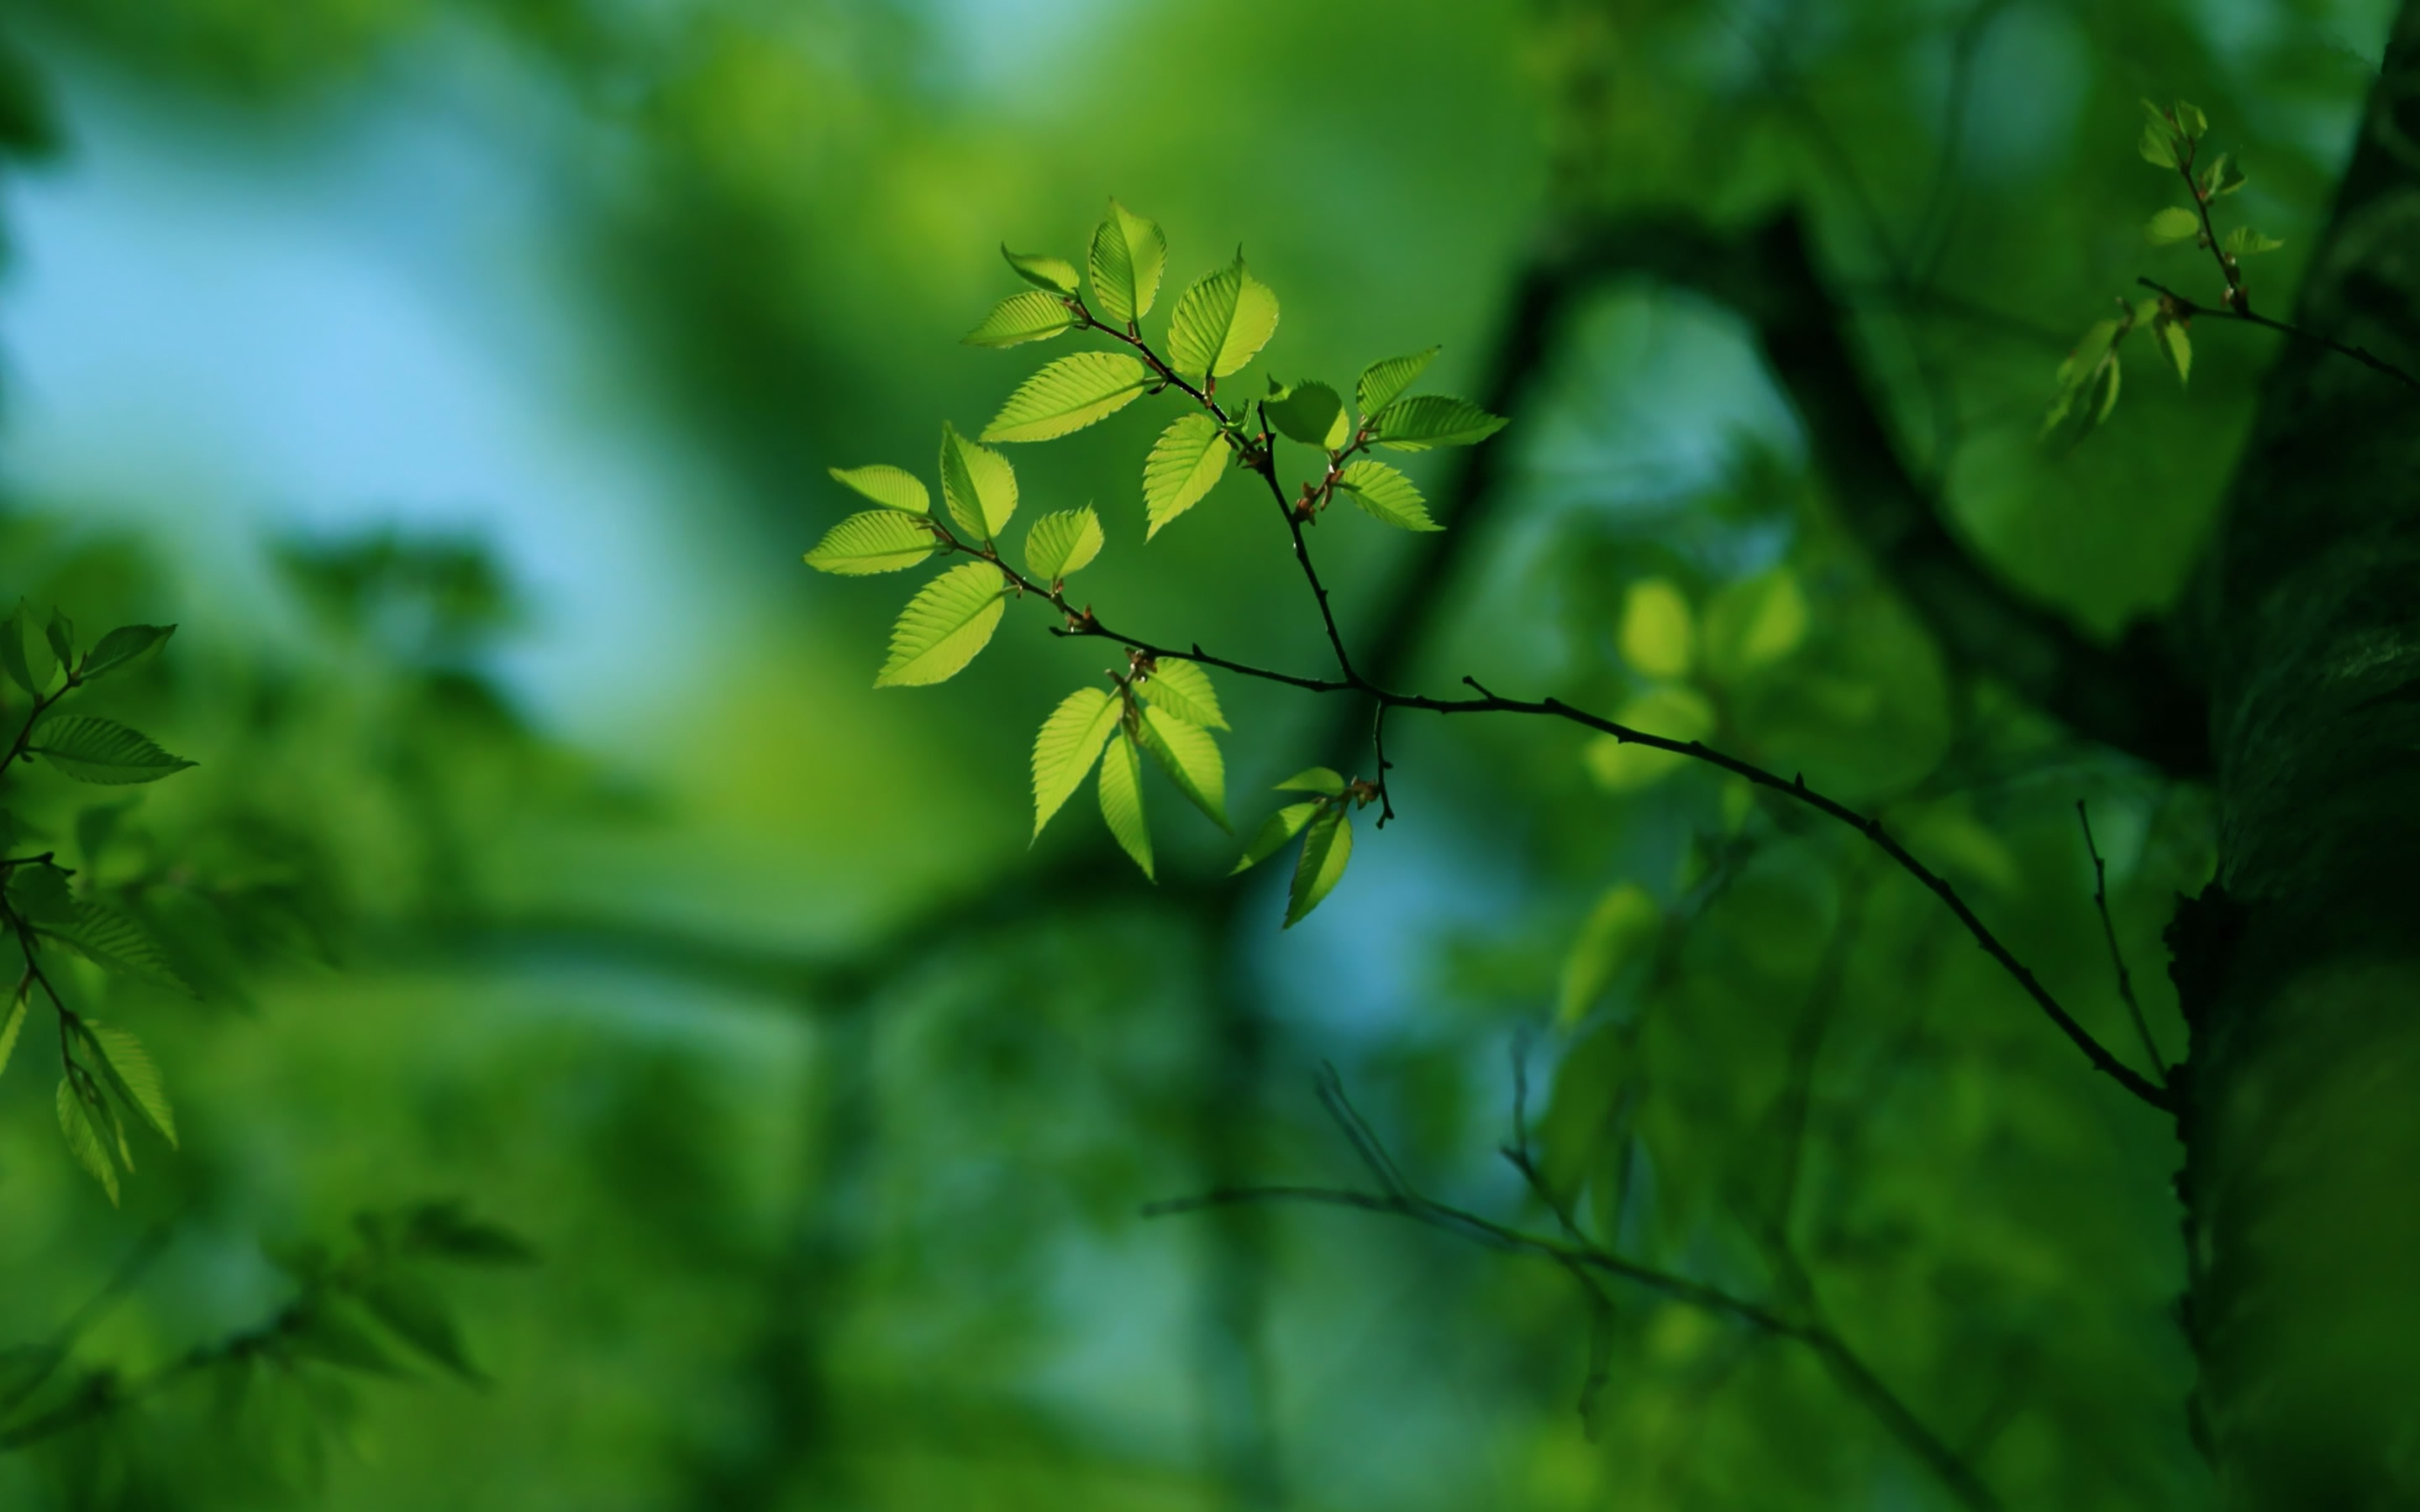 Green Tree Mac Wallpaper Download | Free Mac Wallpapers ...